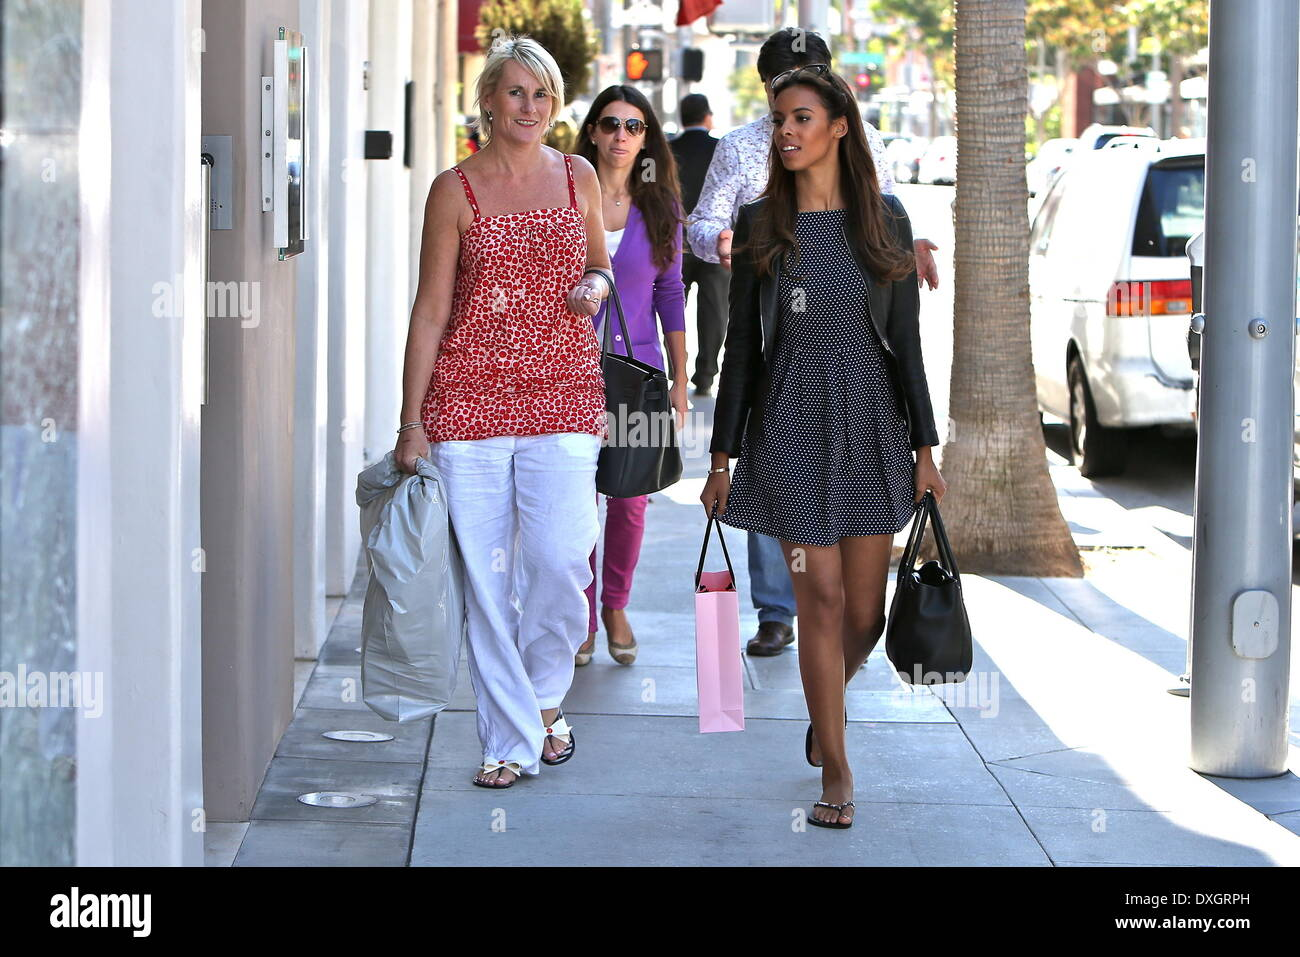 Rochelle Wiseman Aka Rochelle Humes Seen Shopping In Beverly Hills Stock Photo Alamy